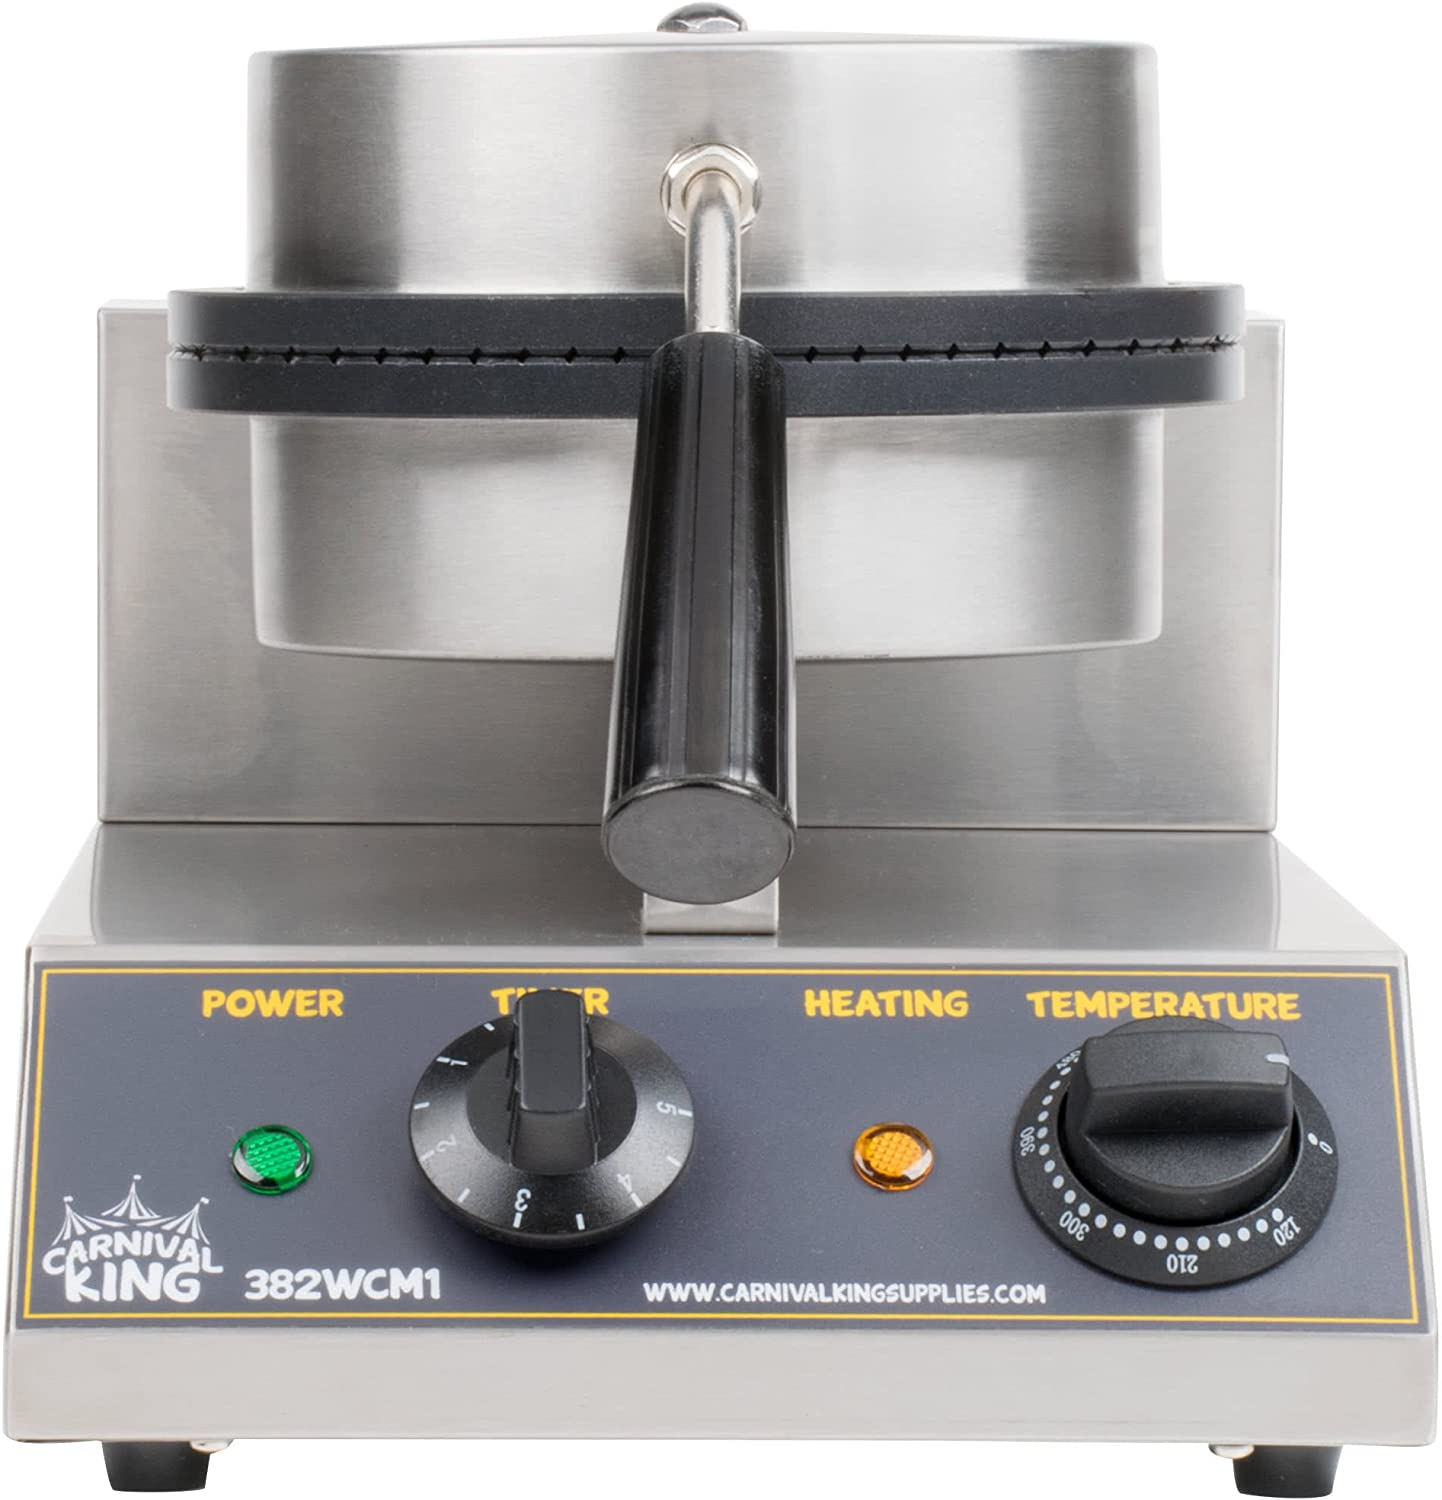 "The Carnival King WCM1 8"" Waffle Cone Maker"